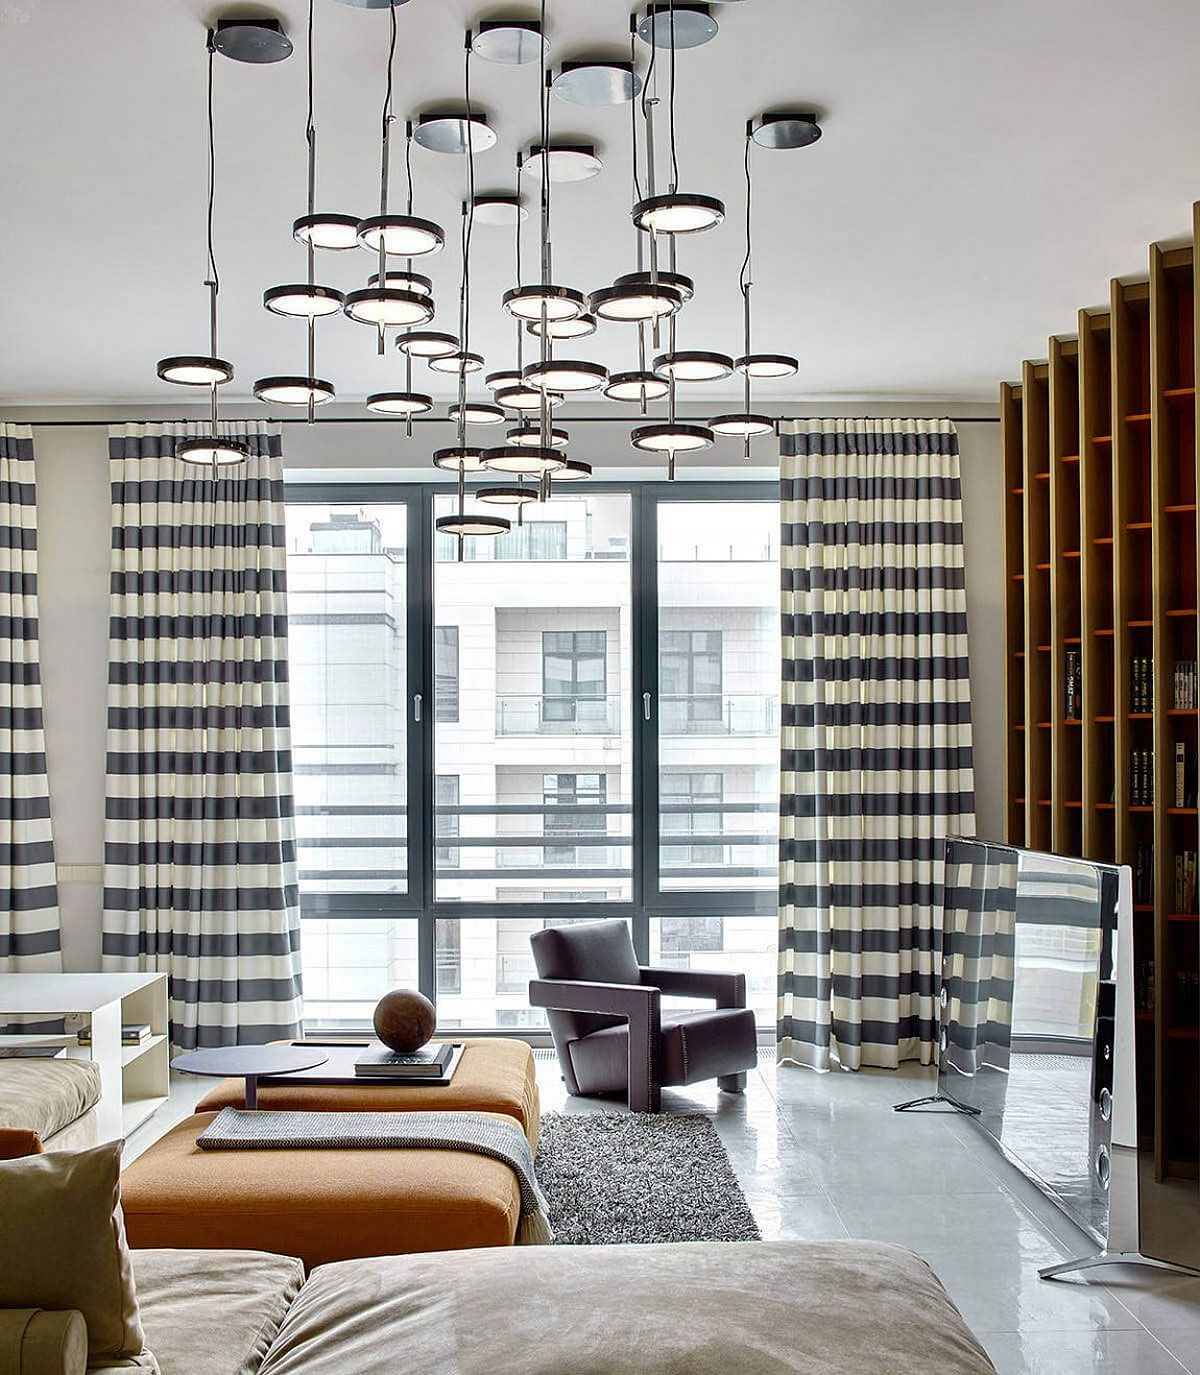 Unique lighting fixture and natural light inside the Russian apartment